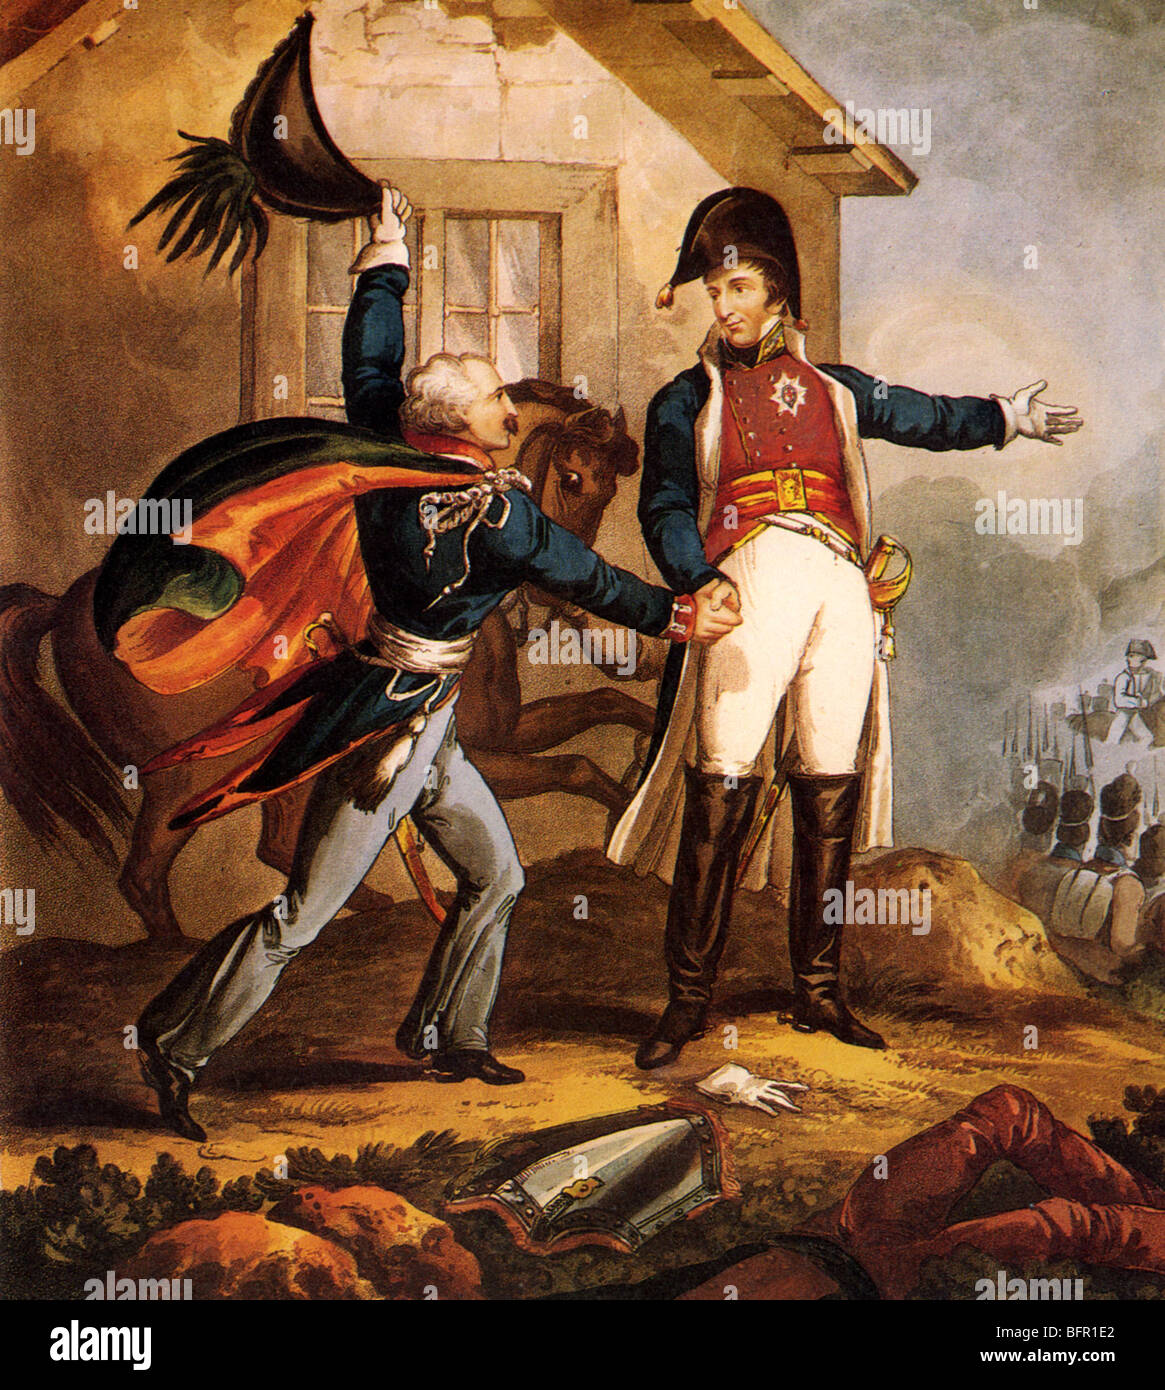 BLUCHER meets the Duke of Wellington at La Belle Alliance inn during the Battle of Waterloo (see Description below) - Stock Image